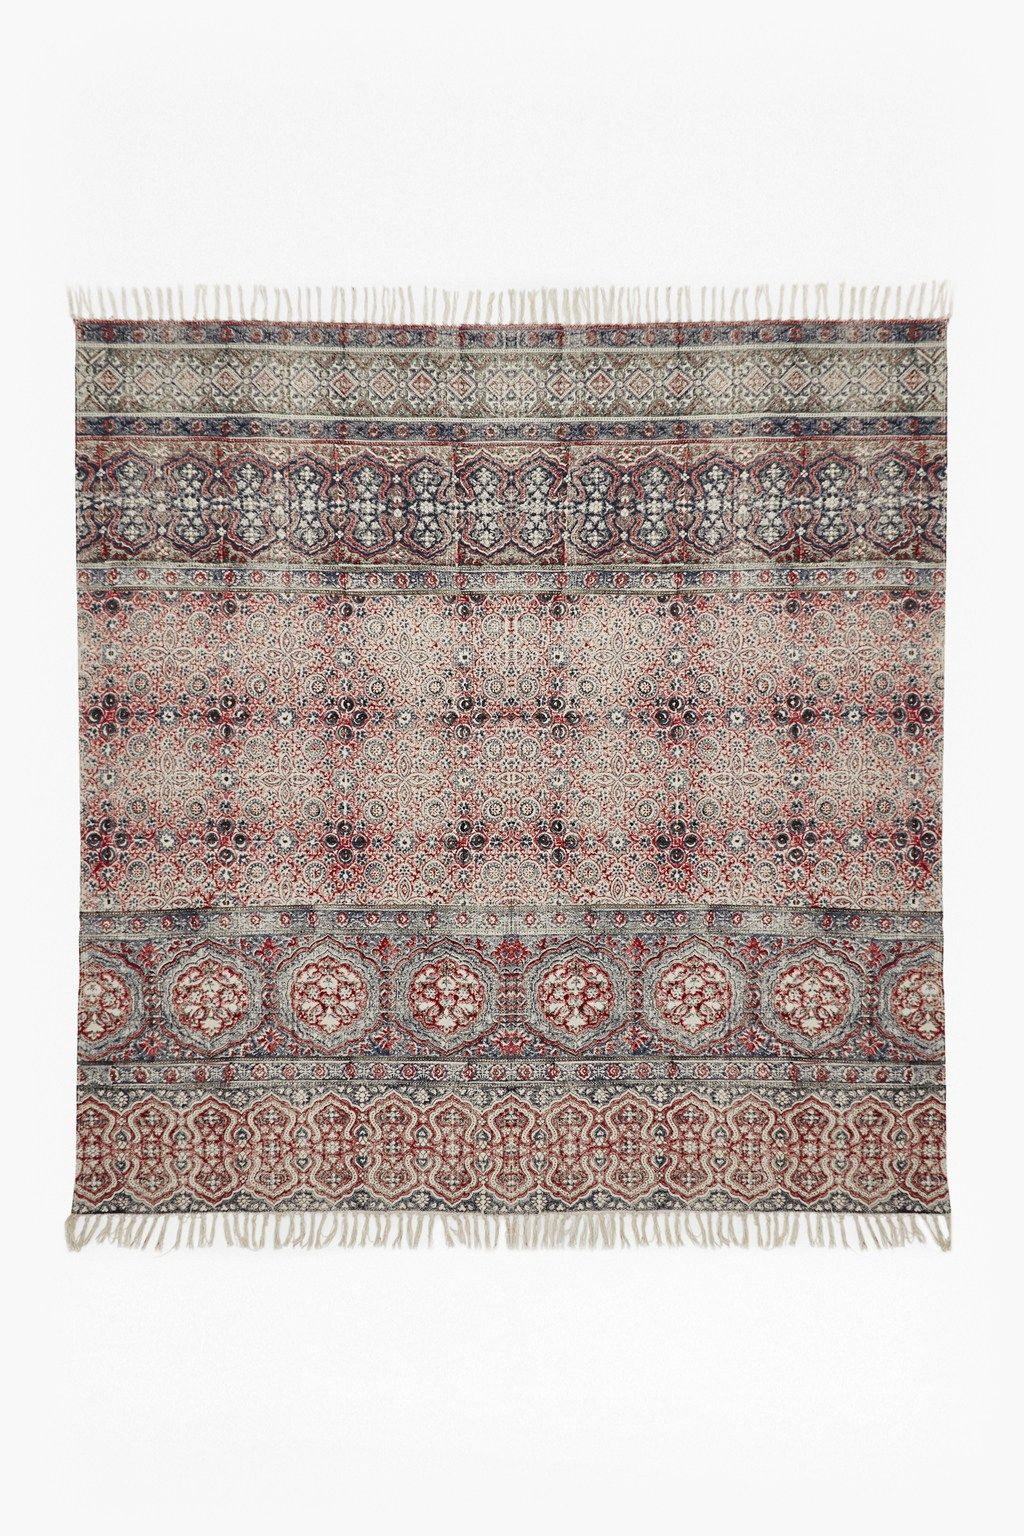 Hand Printed Square Shaped Rug Frayed Edges Distressed